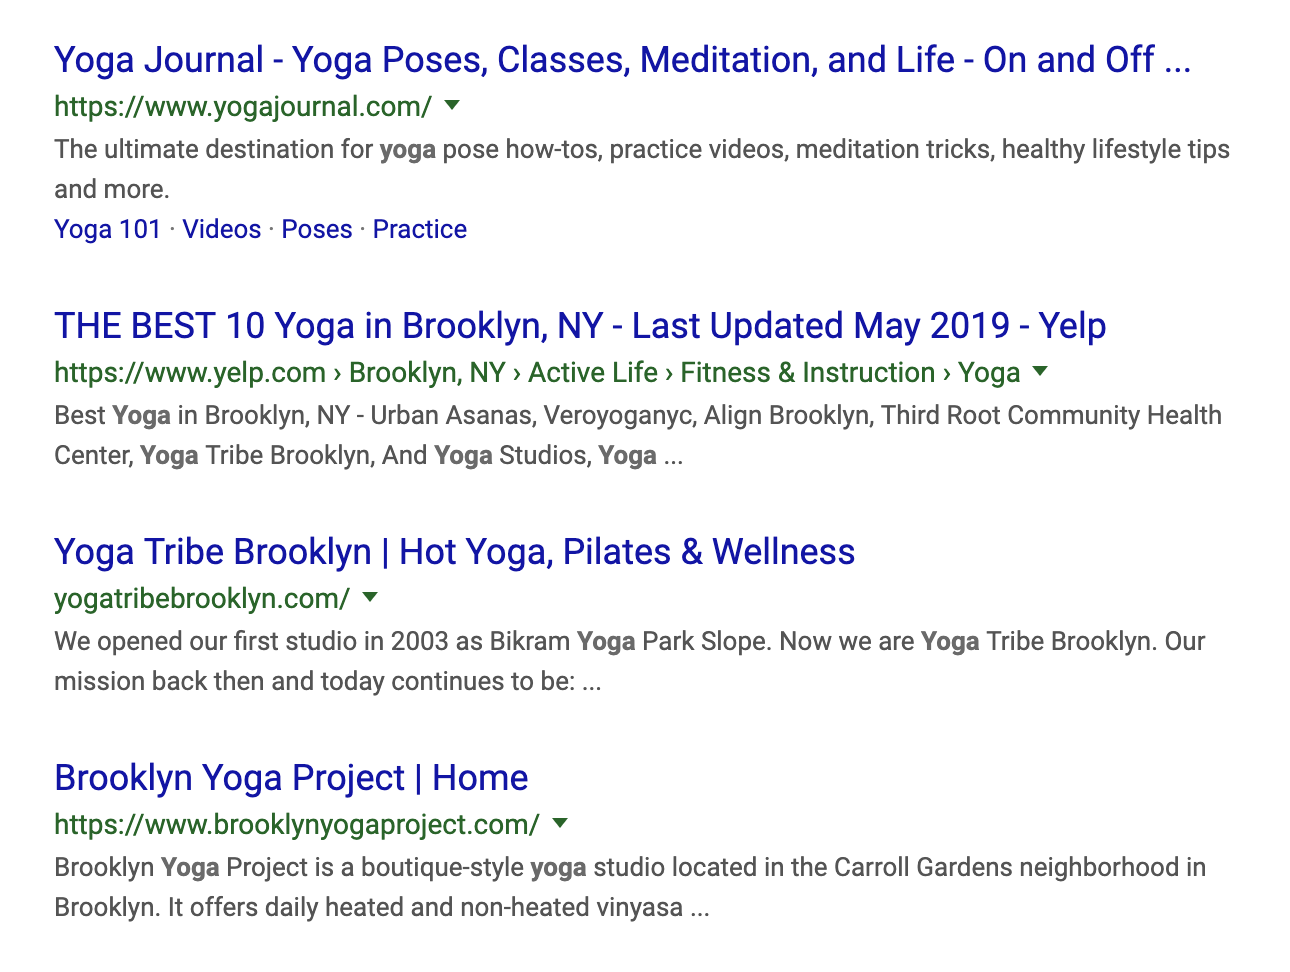 """This is an example of Relevancy Highlighting - Notice how the word """"Yoga"""" is featured in bold in the search results when we do a search for the word """"Yoga""""."""